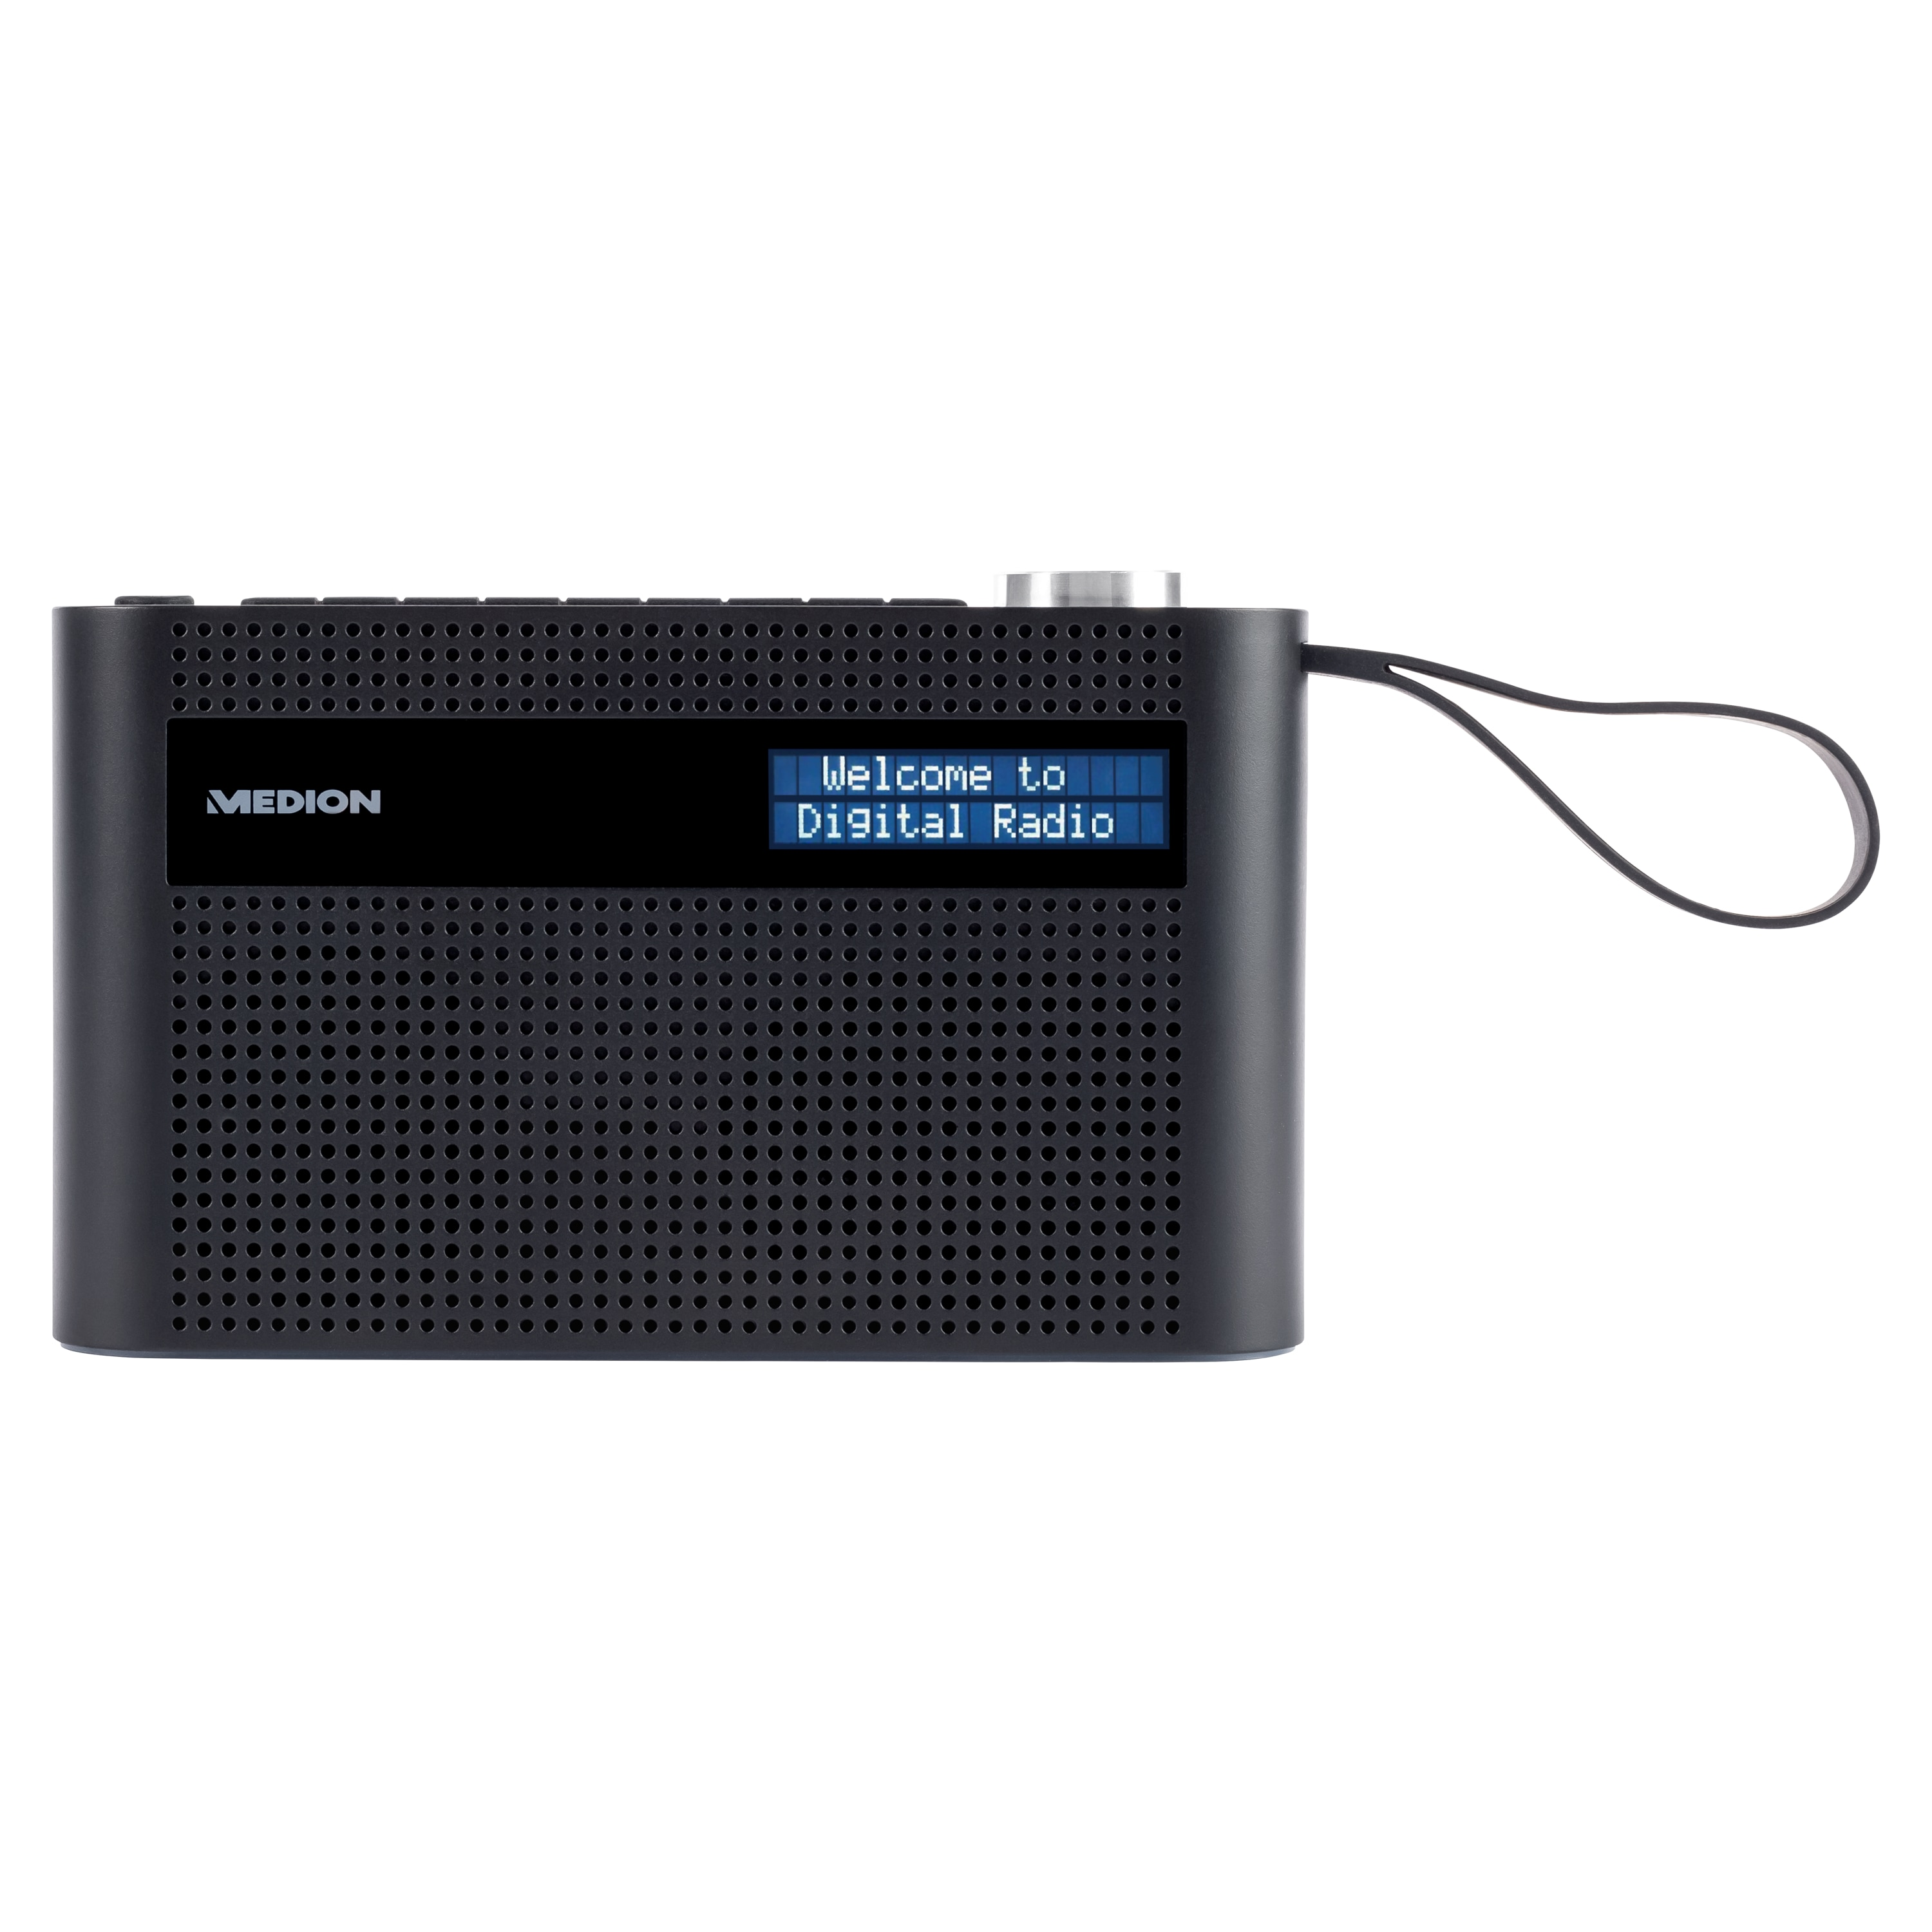 MEDION® P66007 Tragbares Radio, dimmbares Dot-Matrix-Display, DAB+/UKW, Bluetooth® 5.0, integr. Akku, kompaktes Design, Trageschlaufe, 3 W (RMS)